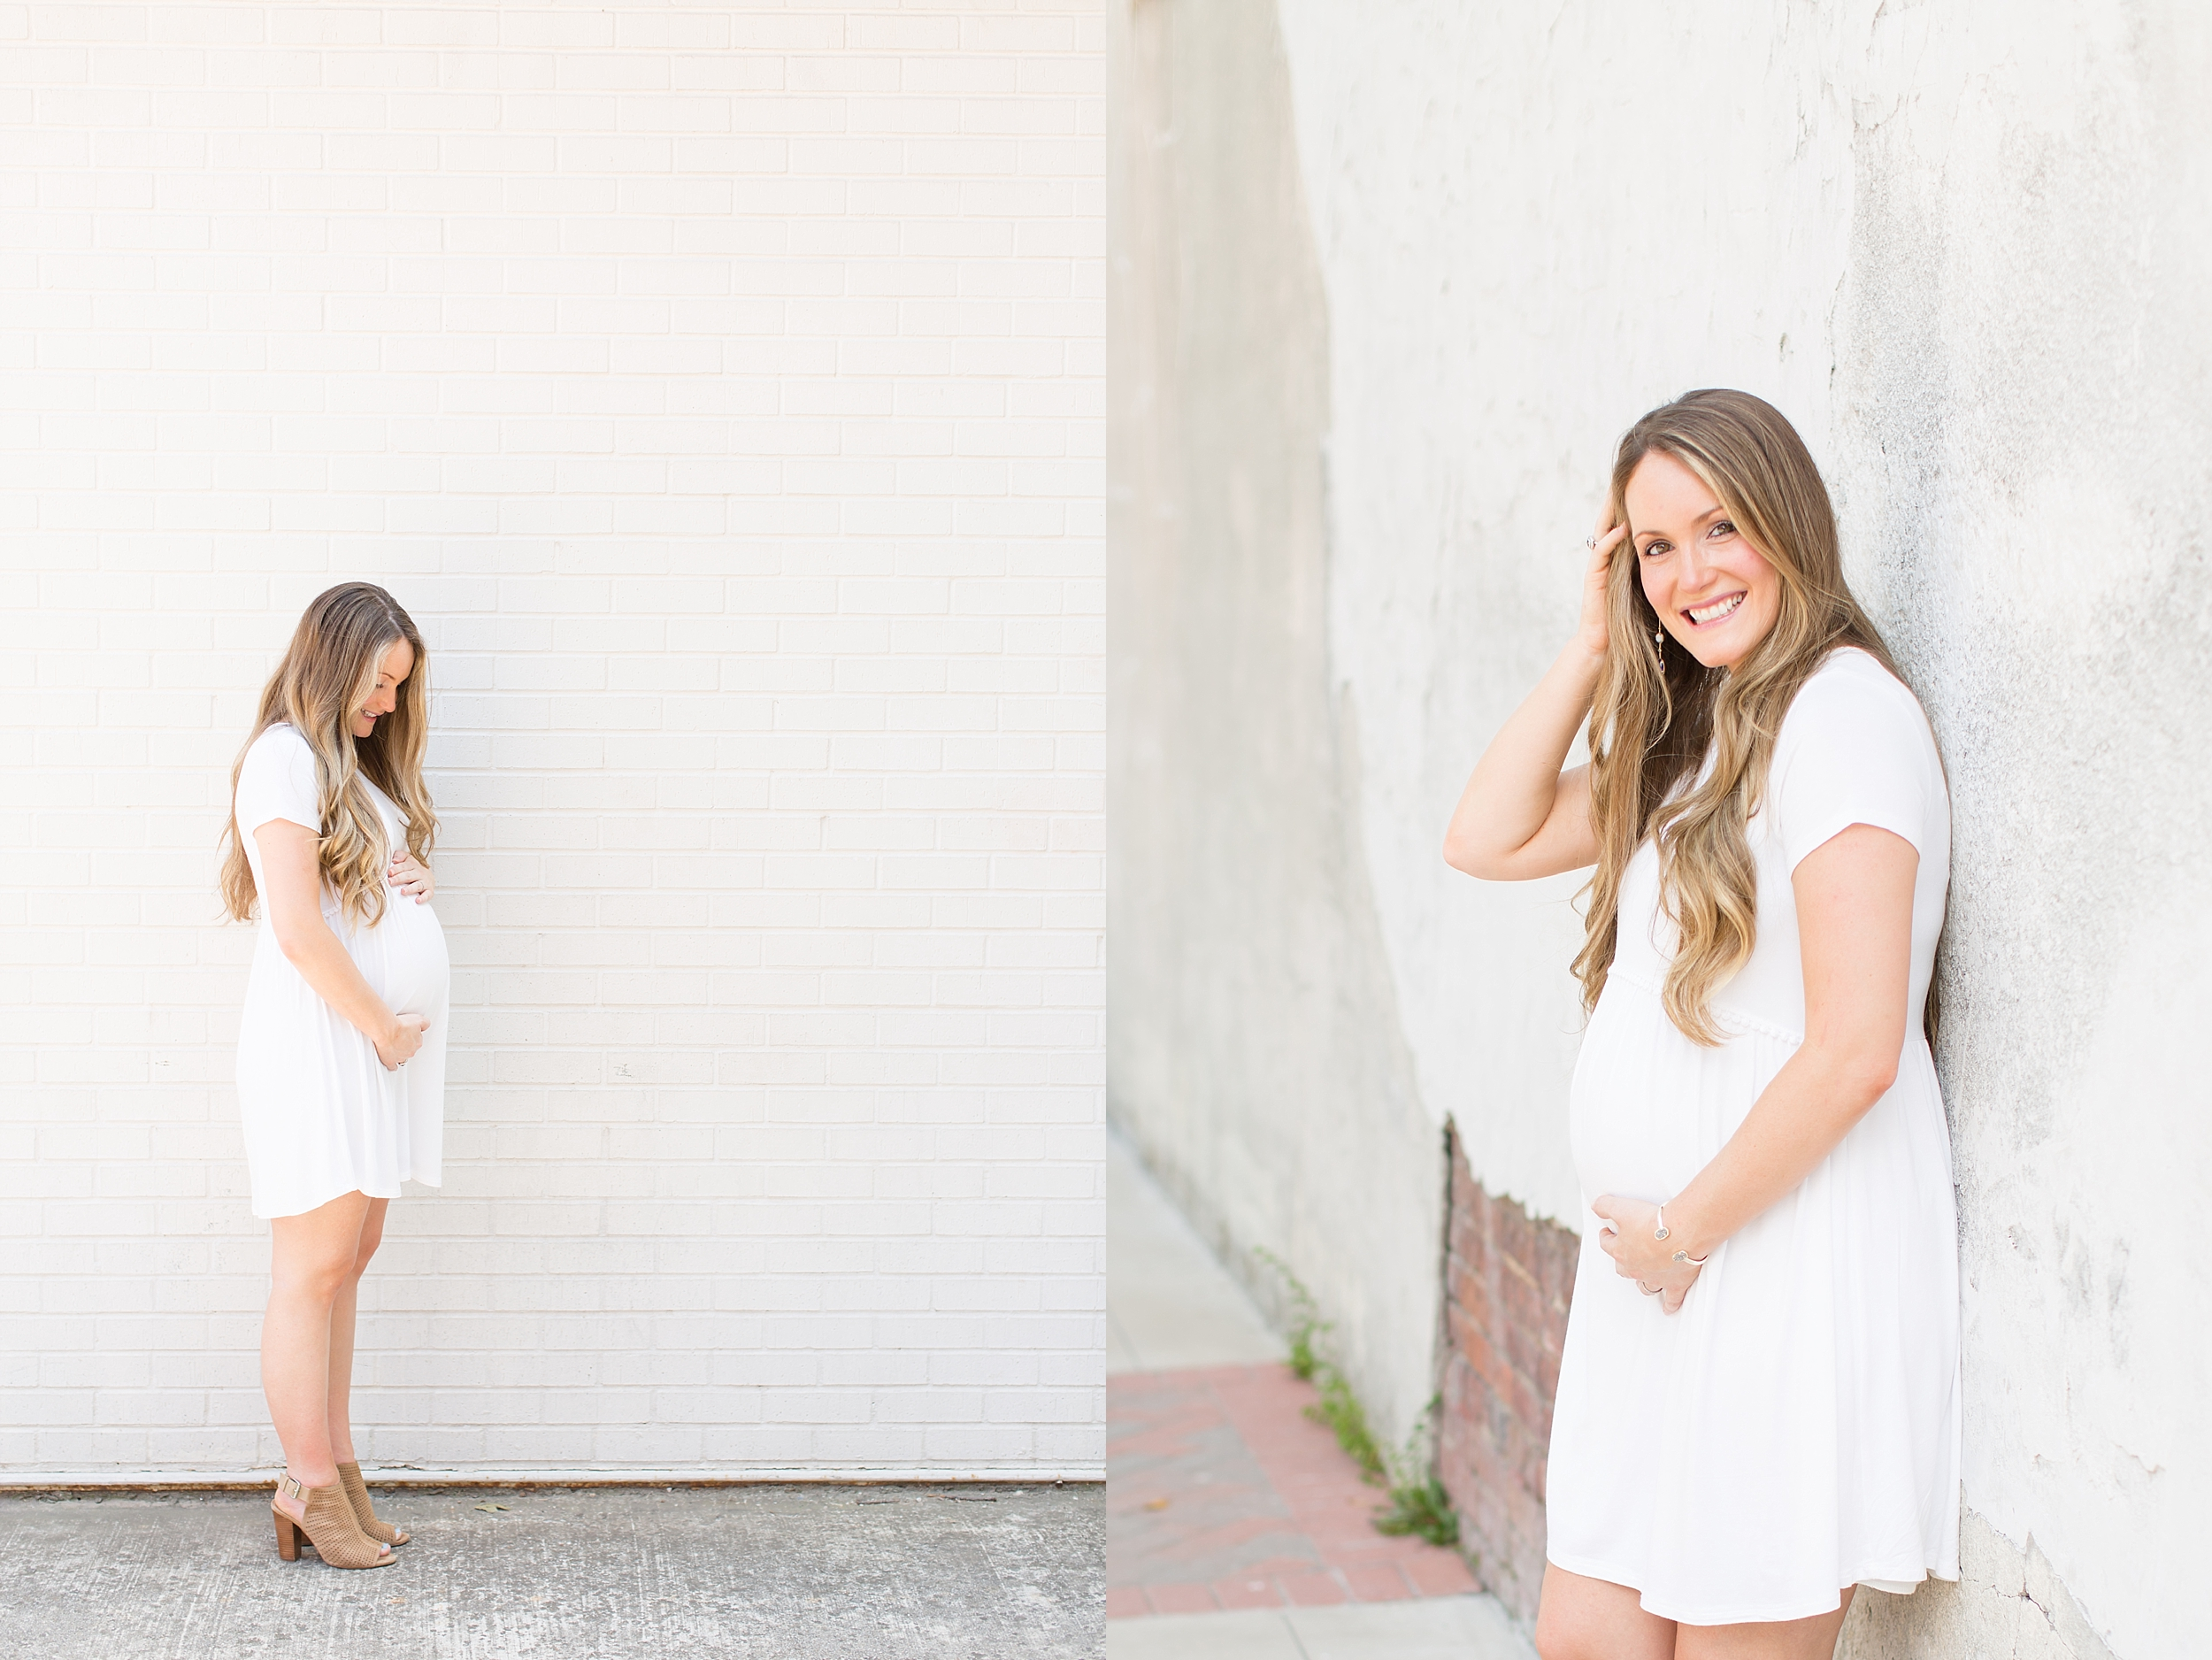 Landon-Schneider-Photography-Holt-Maternity-Session-McKinney-Texas_0019.jpg